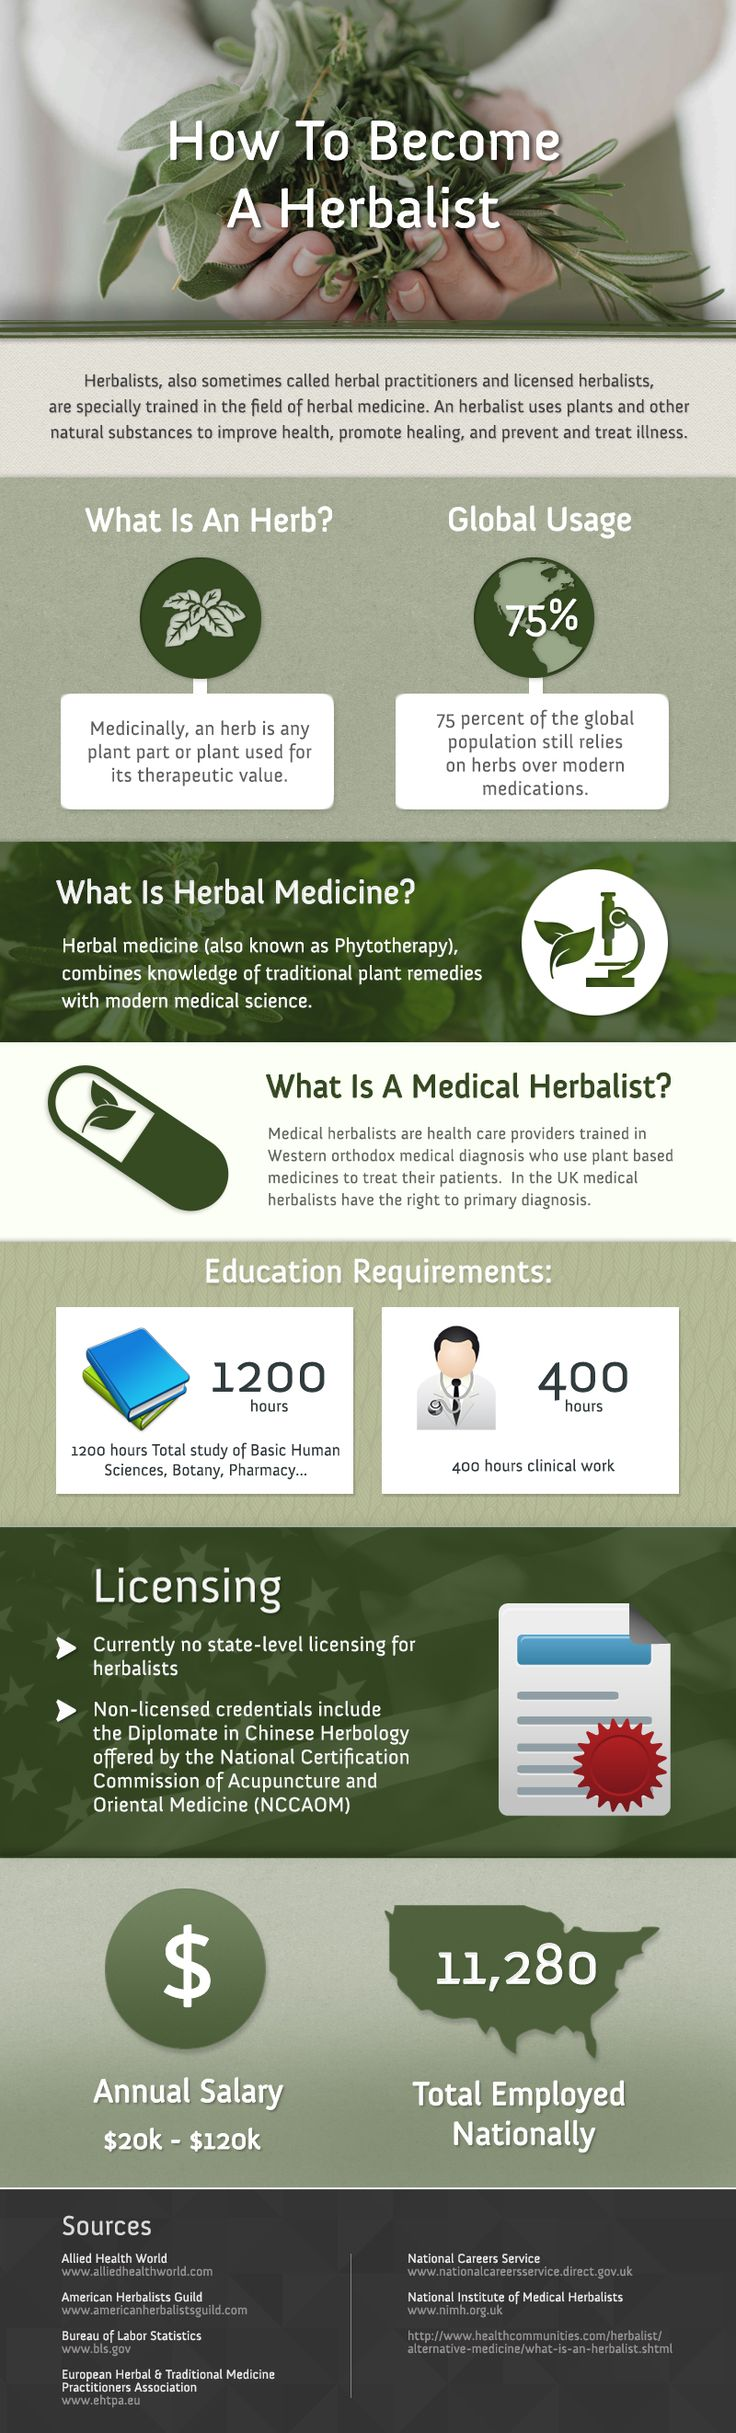 How To Become A Herbalist #infographic #HowTo #Career #Education